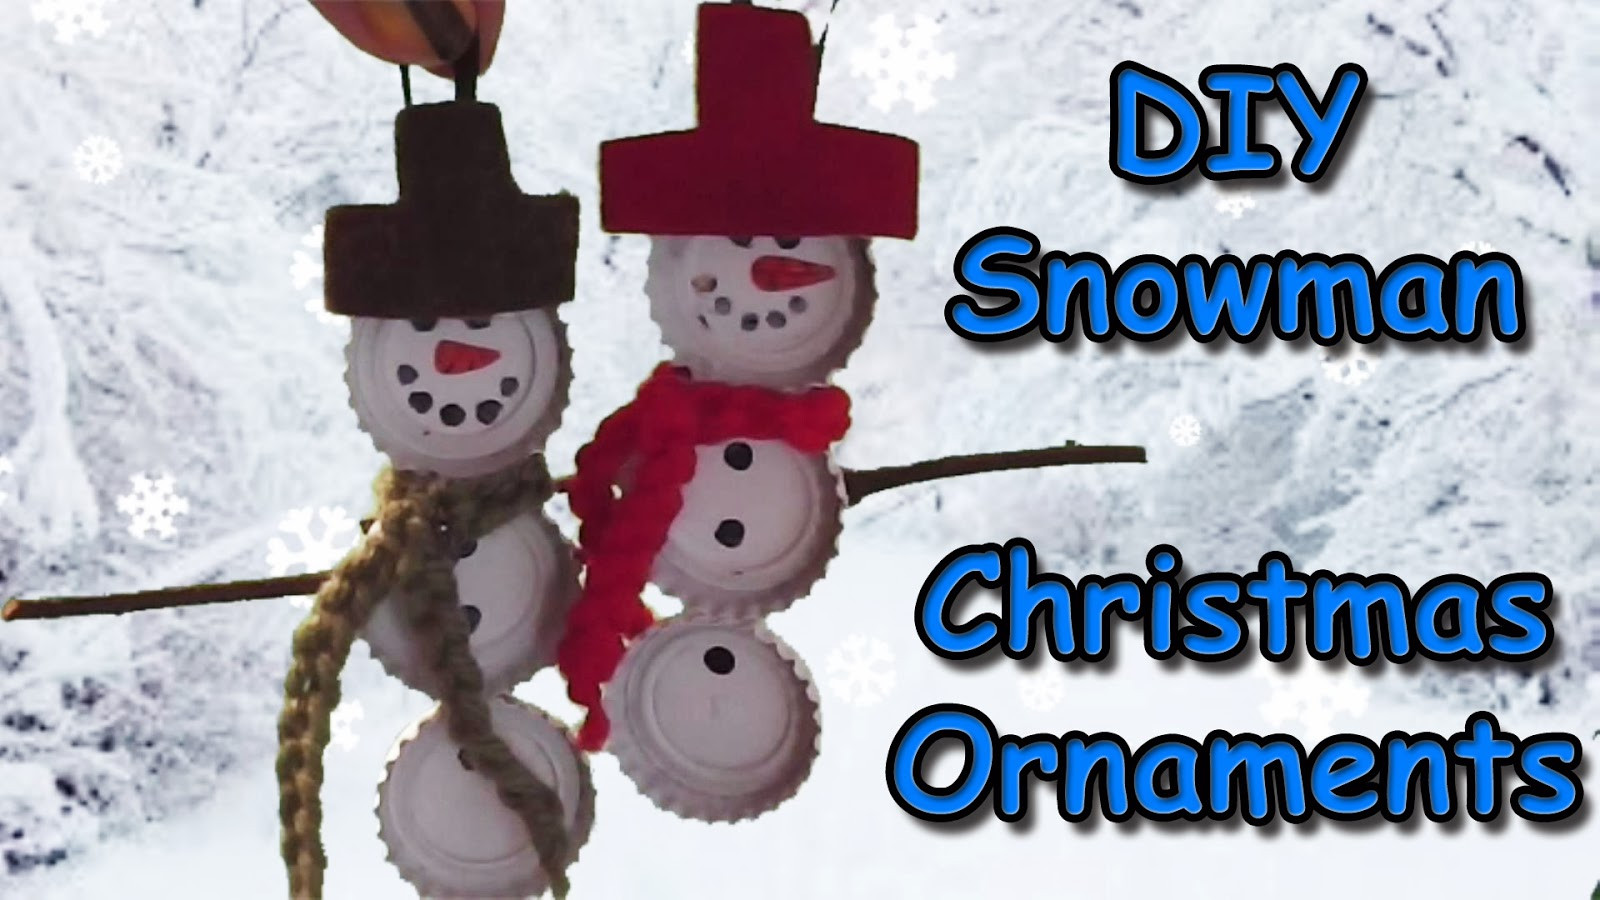 Unique Easymeworld Diy Snowman Christmas ornaments Snowman Christmas ornaments Of Adorable 45 Models Snowman Christmas ornaments